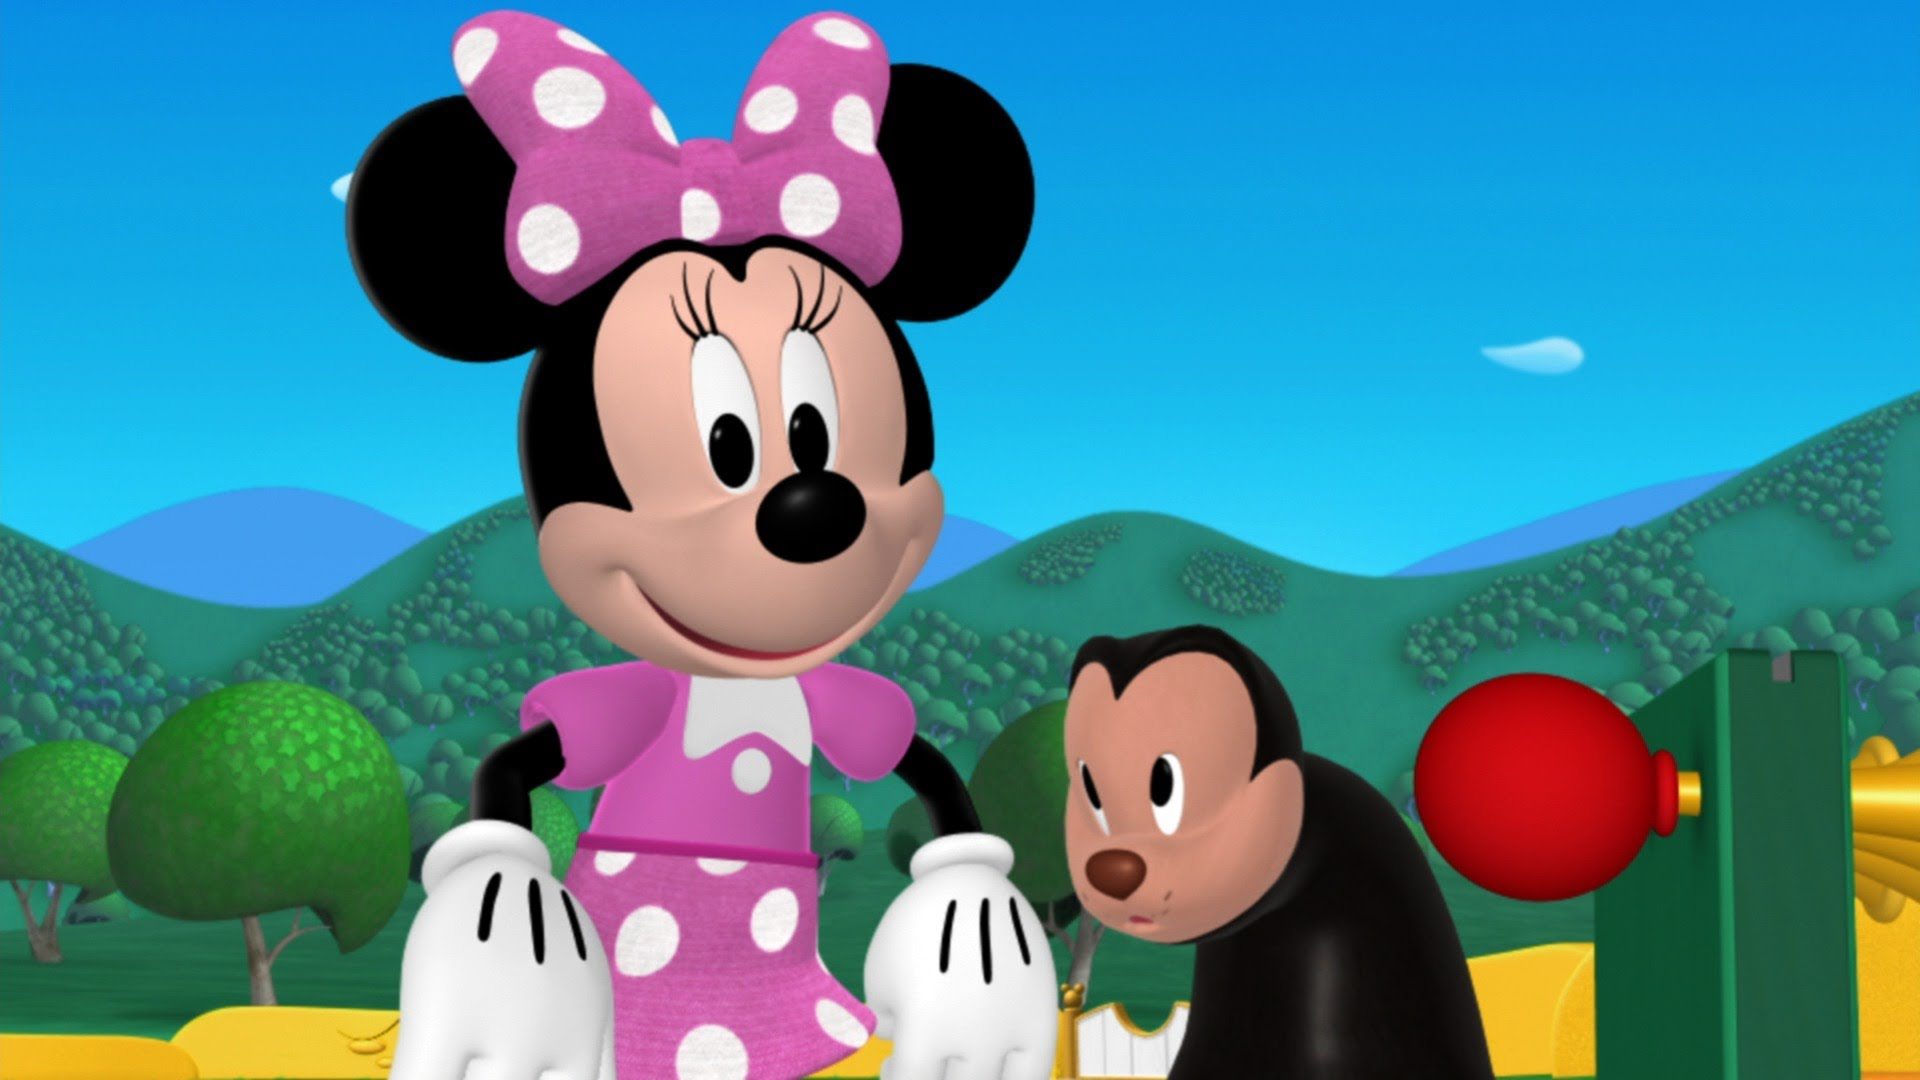 Plutos Playmate Mickey Mouse Clubhouse episode